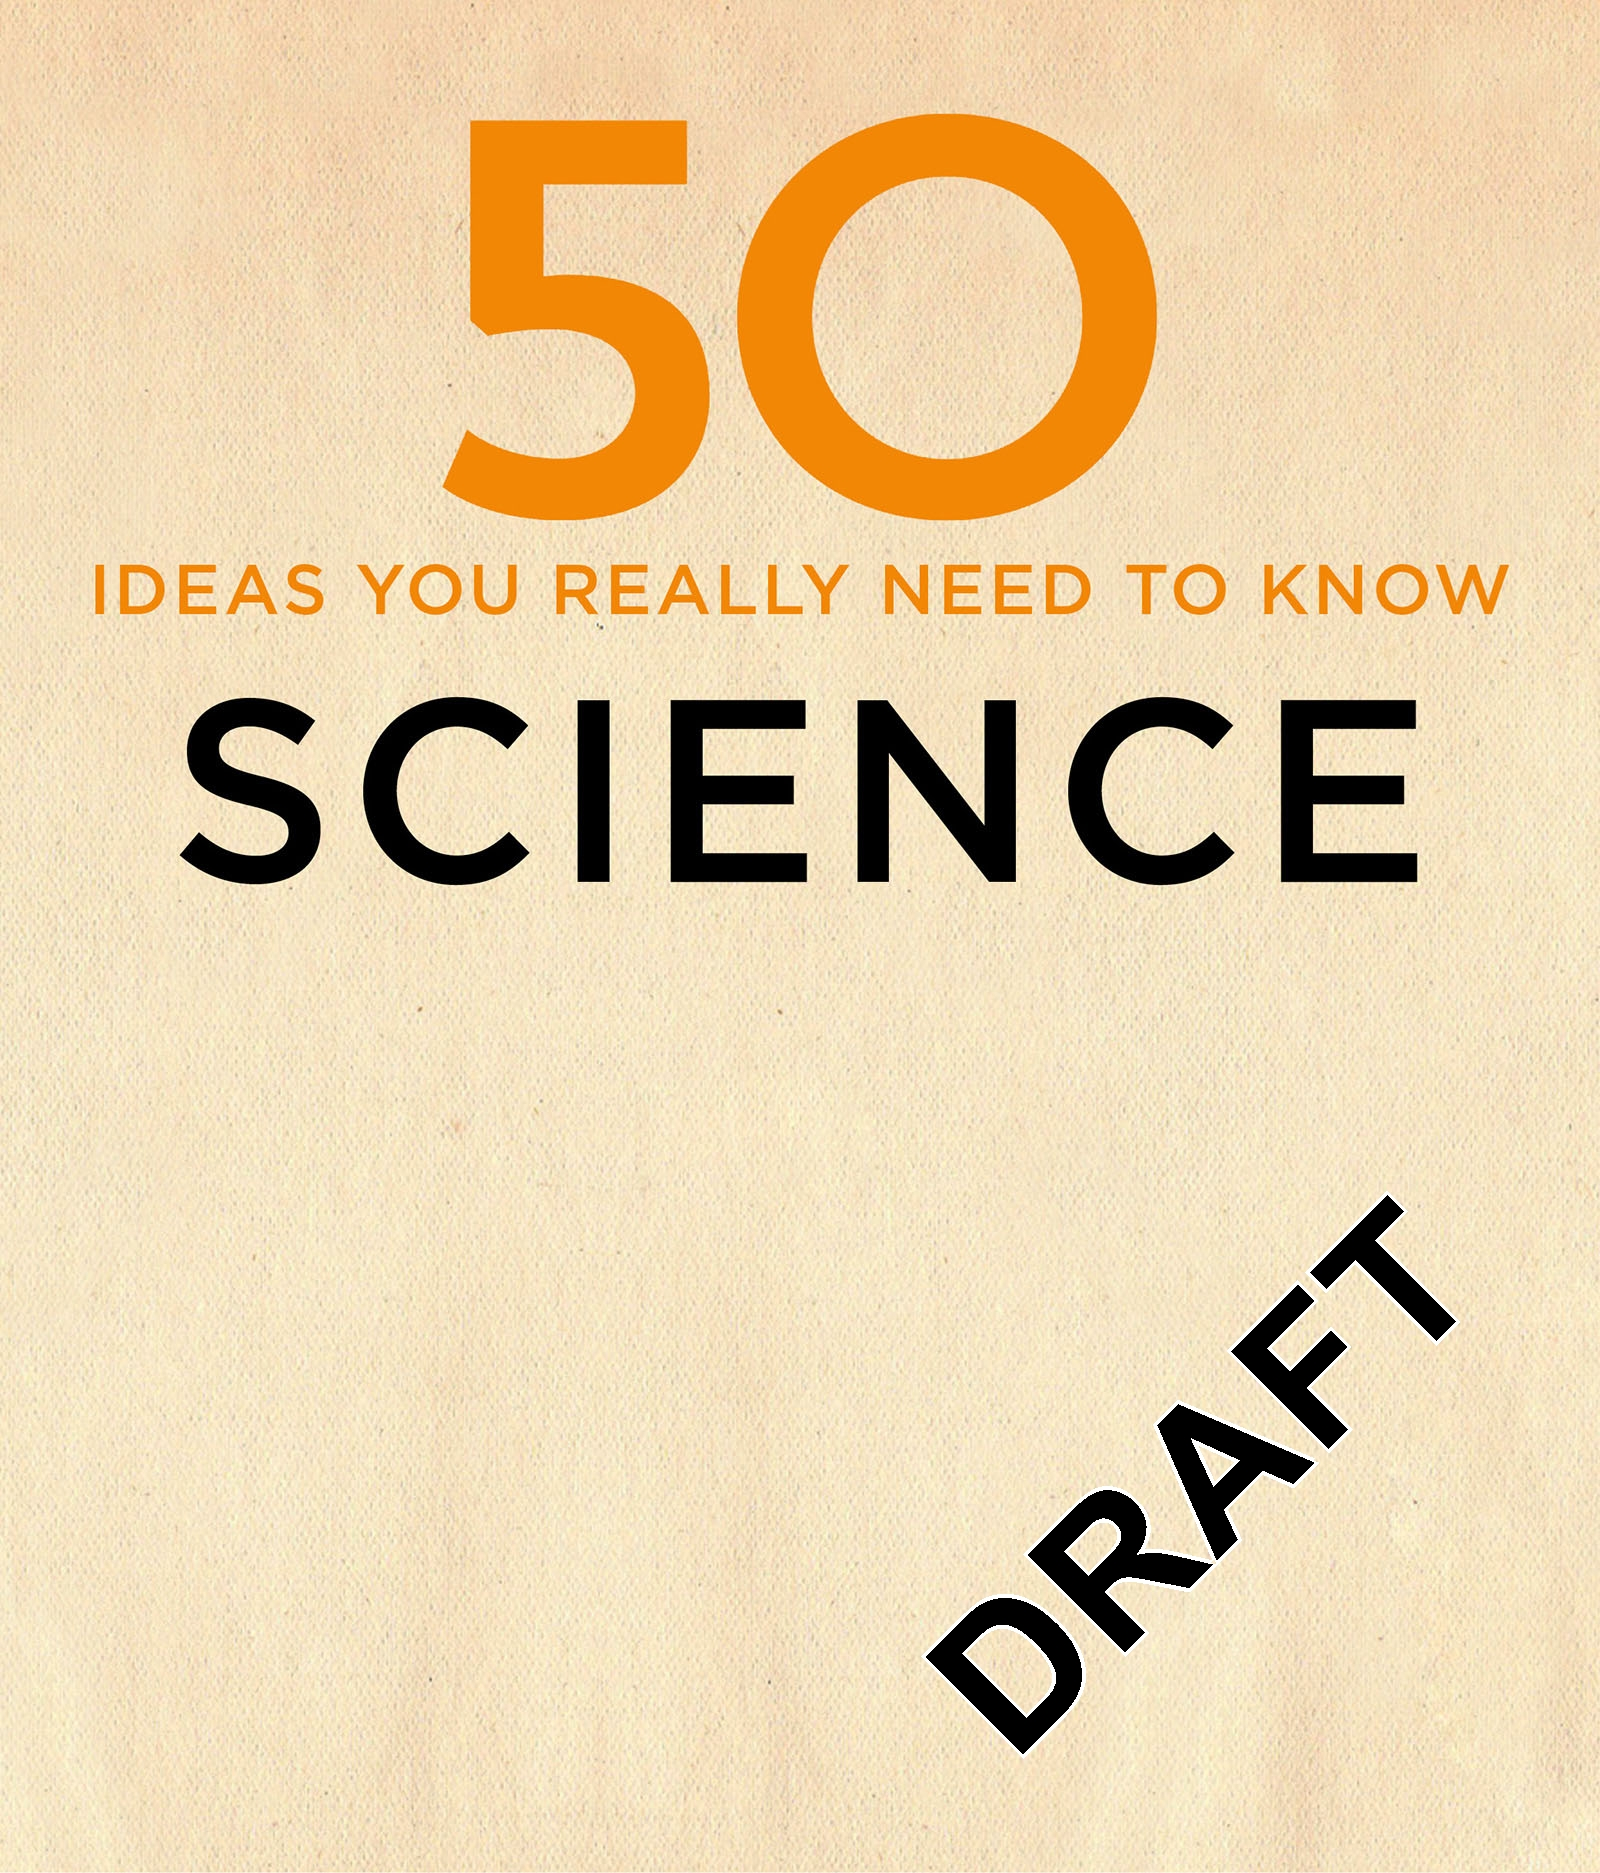 50 Science Ideas You Really Need to Know by Gail Dixon, Paul Parsons, ISBN: 9781784296155